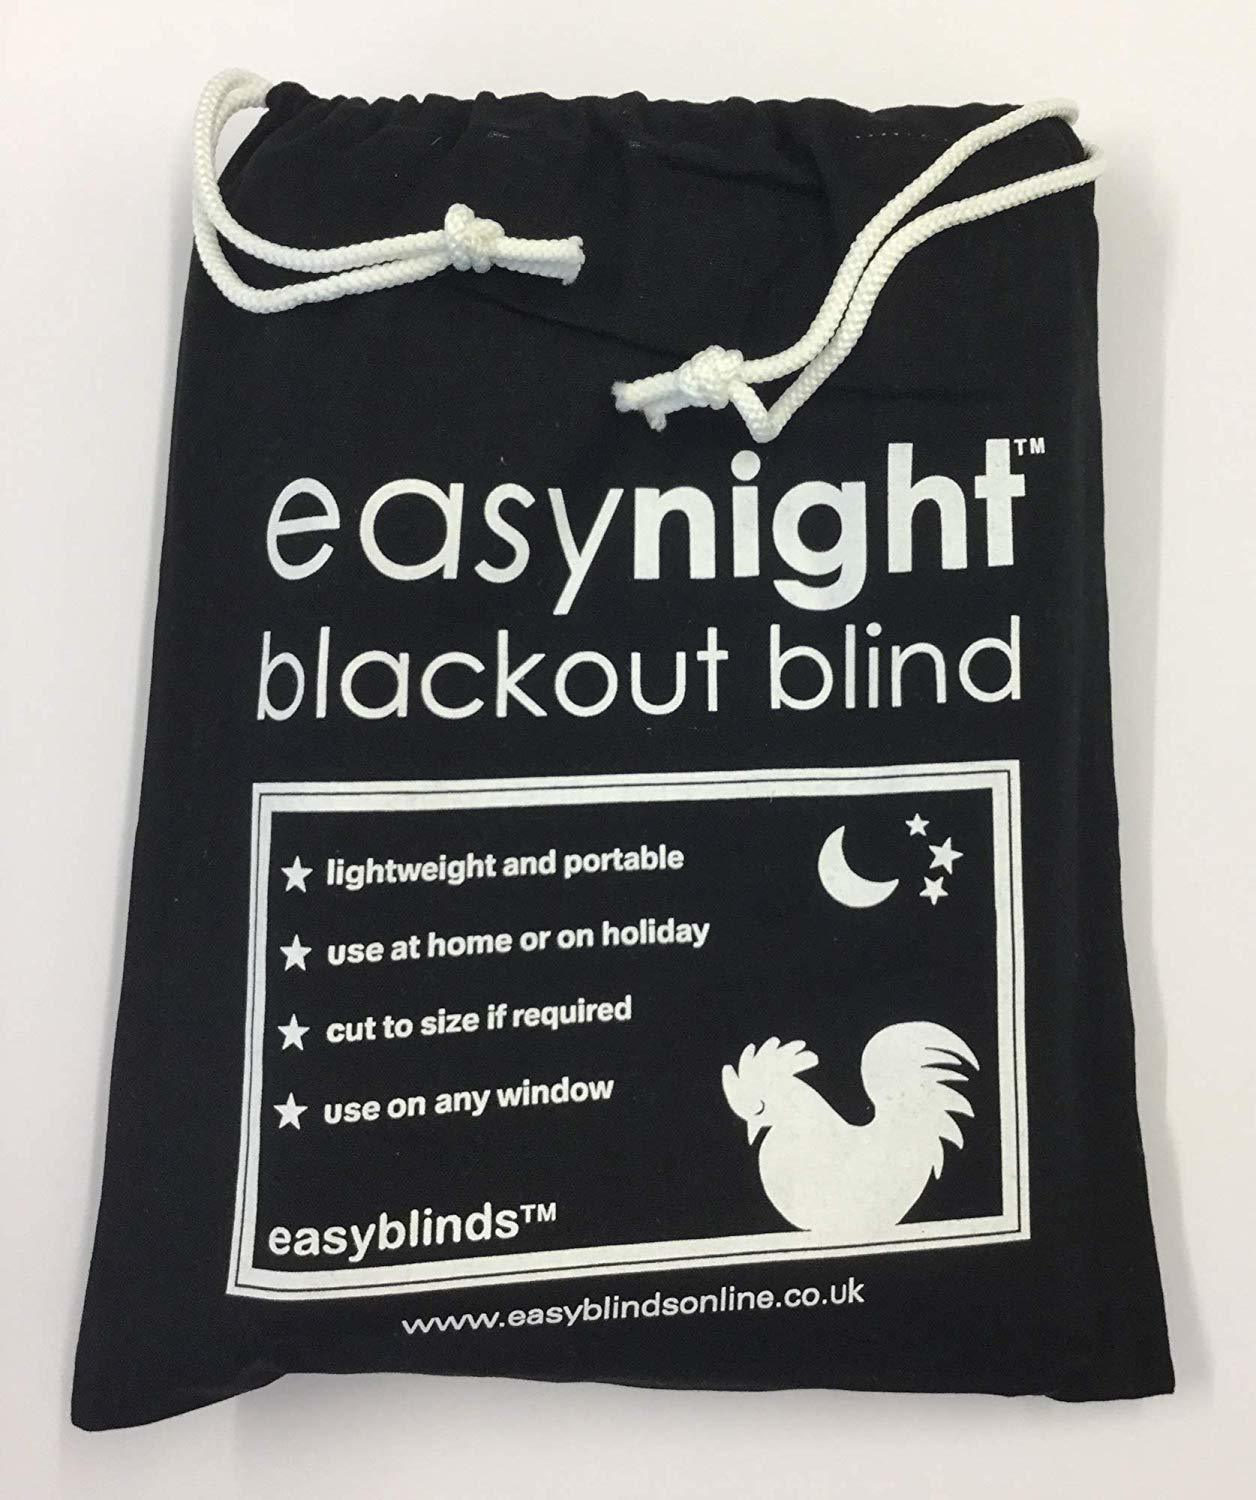 Easynights: Blackout Blind - XXL (3m x 1.4m) image